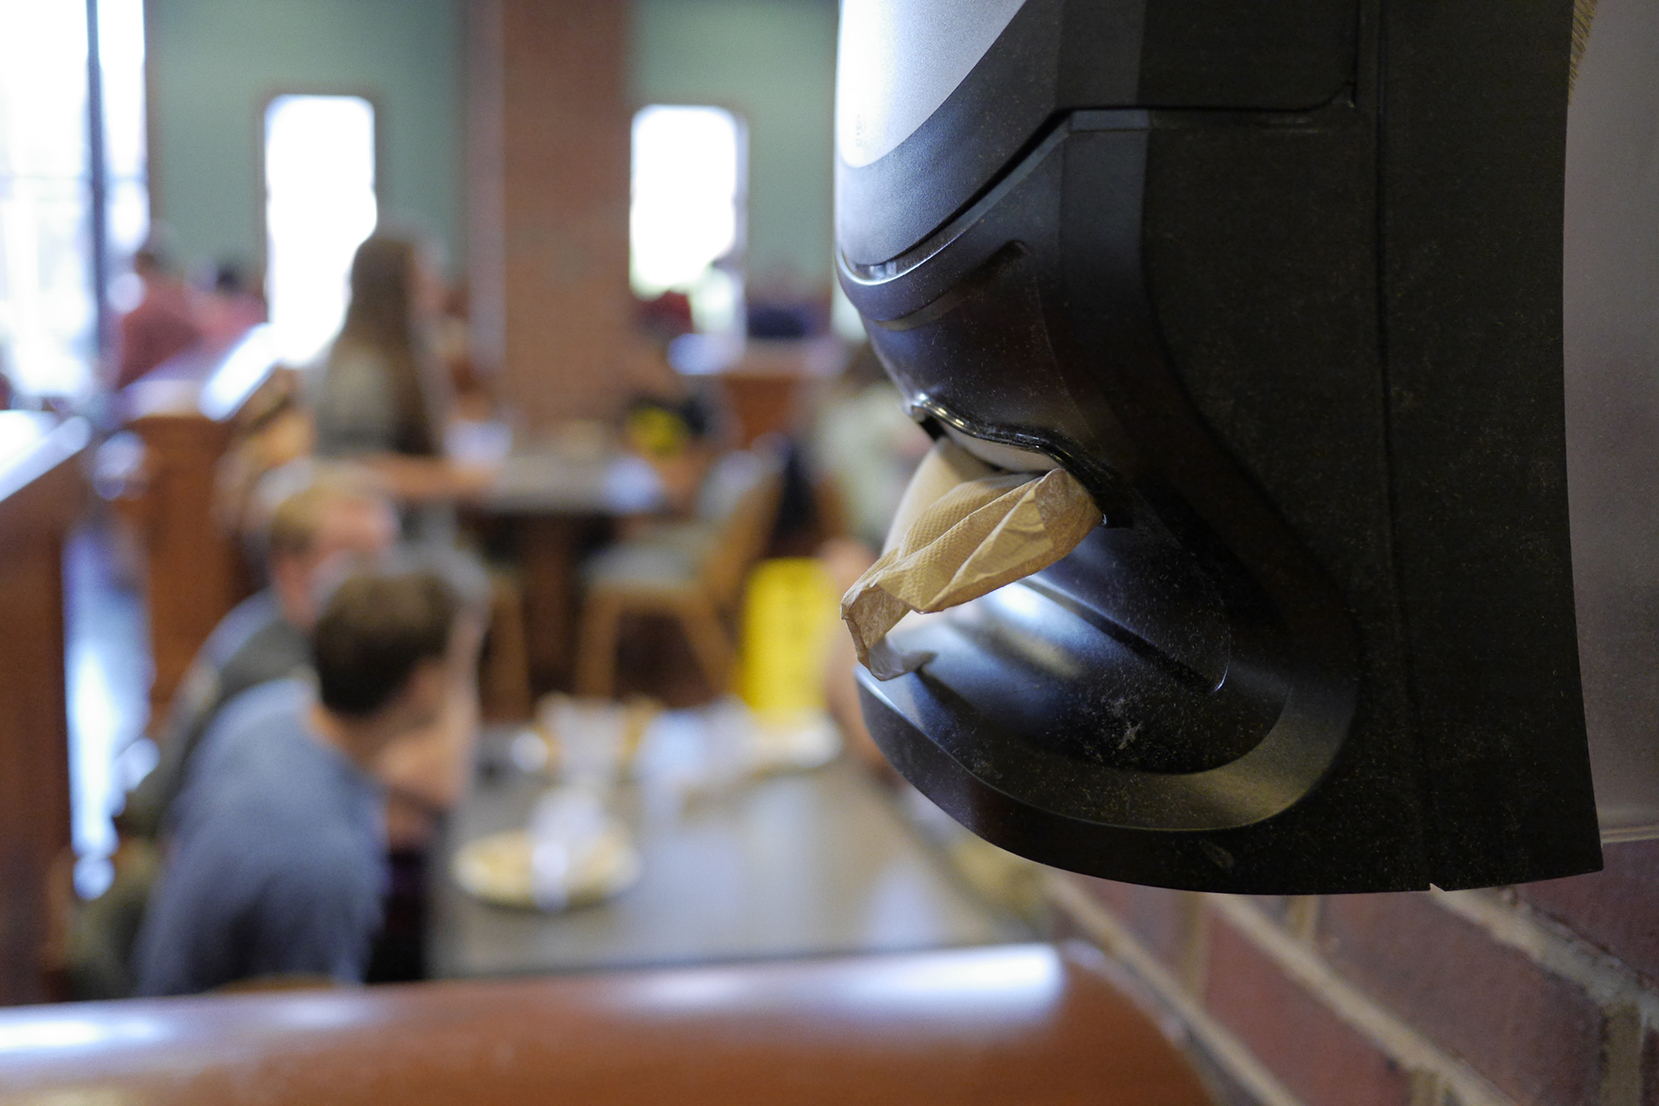 In this file photo, a wall-mounted napkin dispenser is seen in South Dining Hall. Dining Services recently shifted over to more widespread use of wall-mounted dispensers instead of having a dispenser on each table. (File Photo/The Daily Campus)